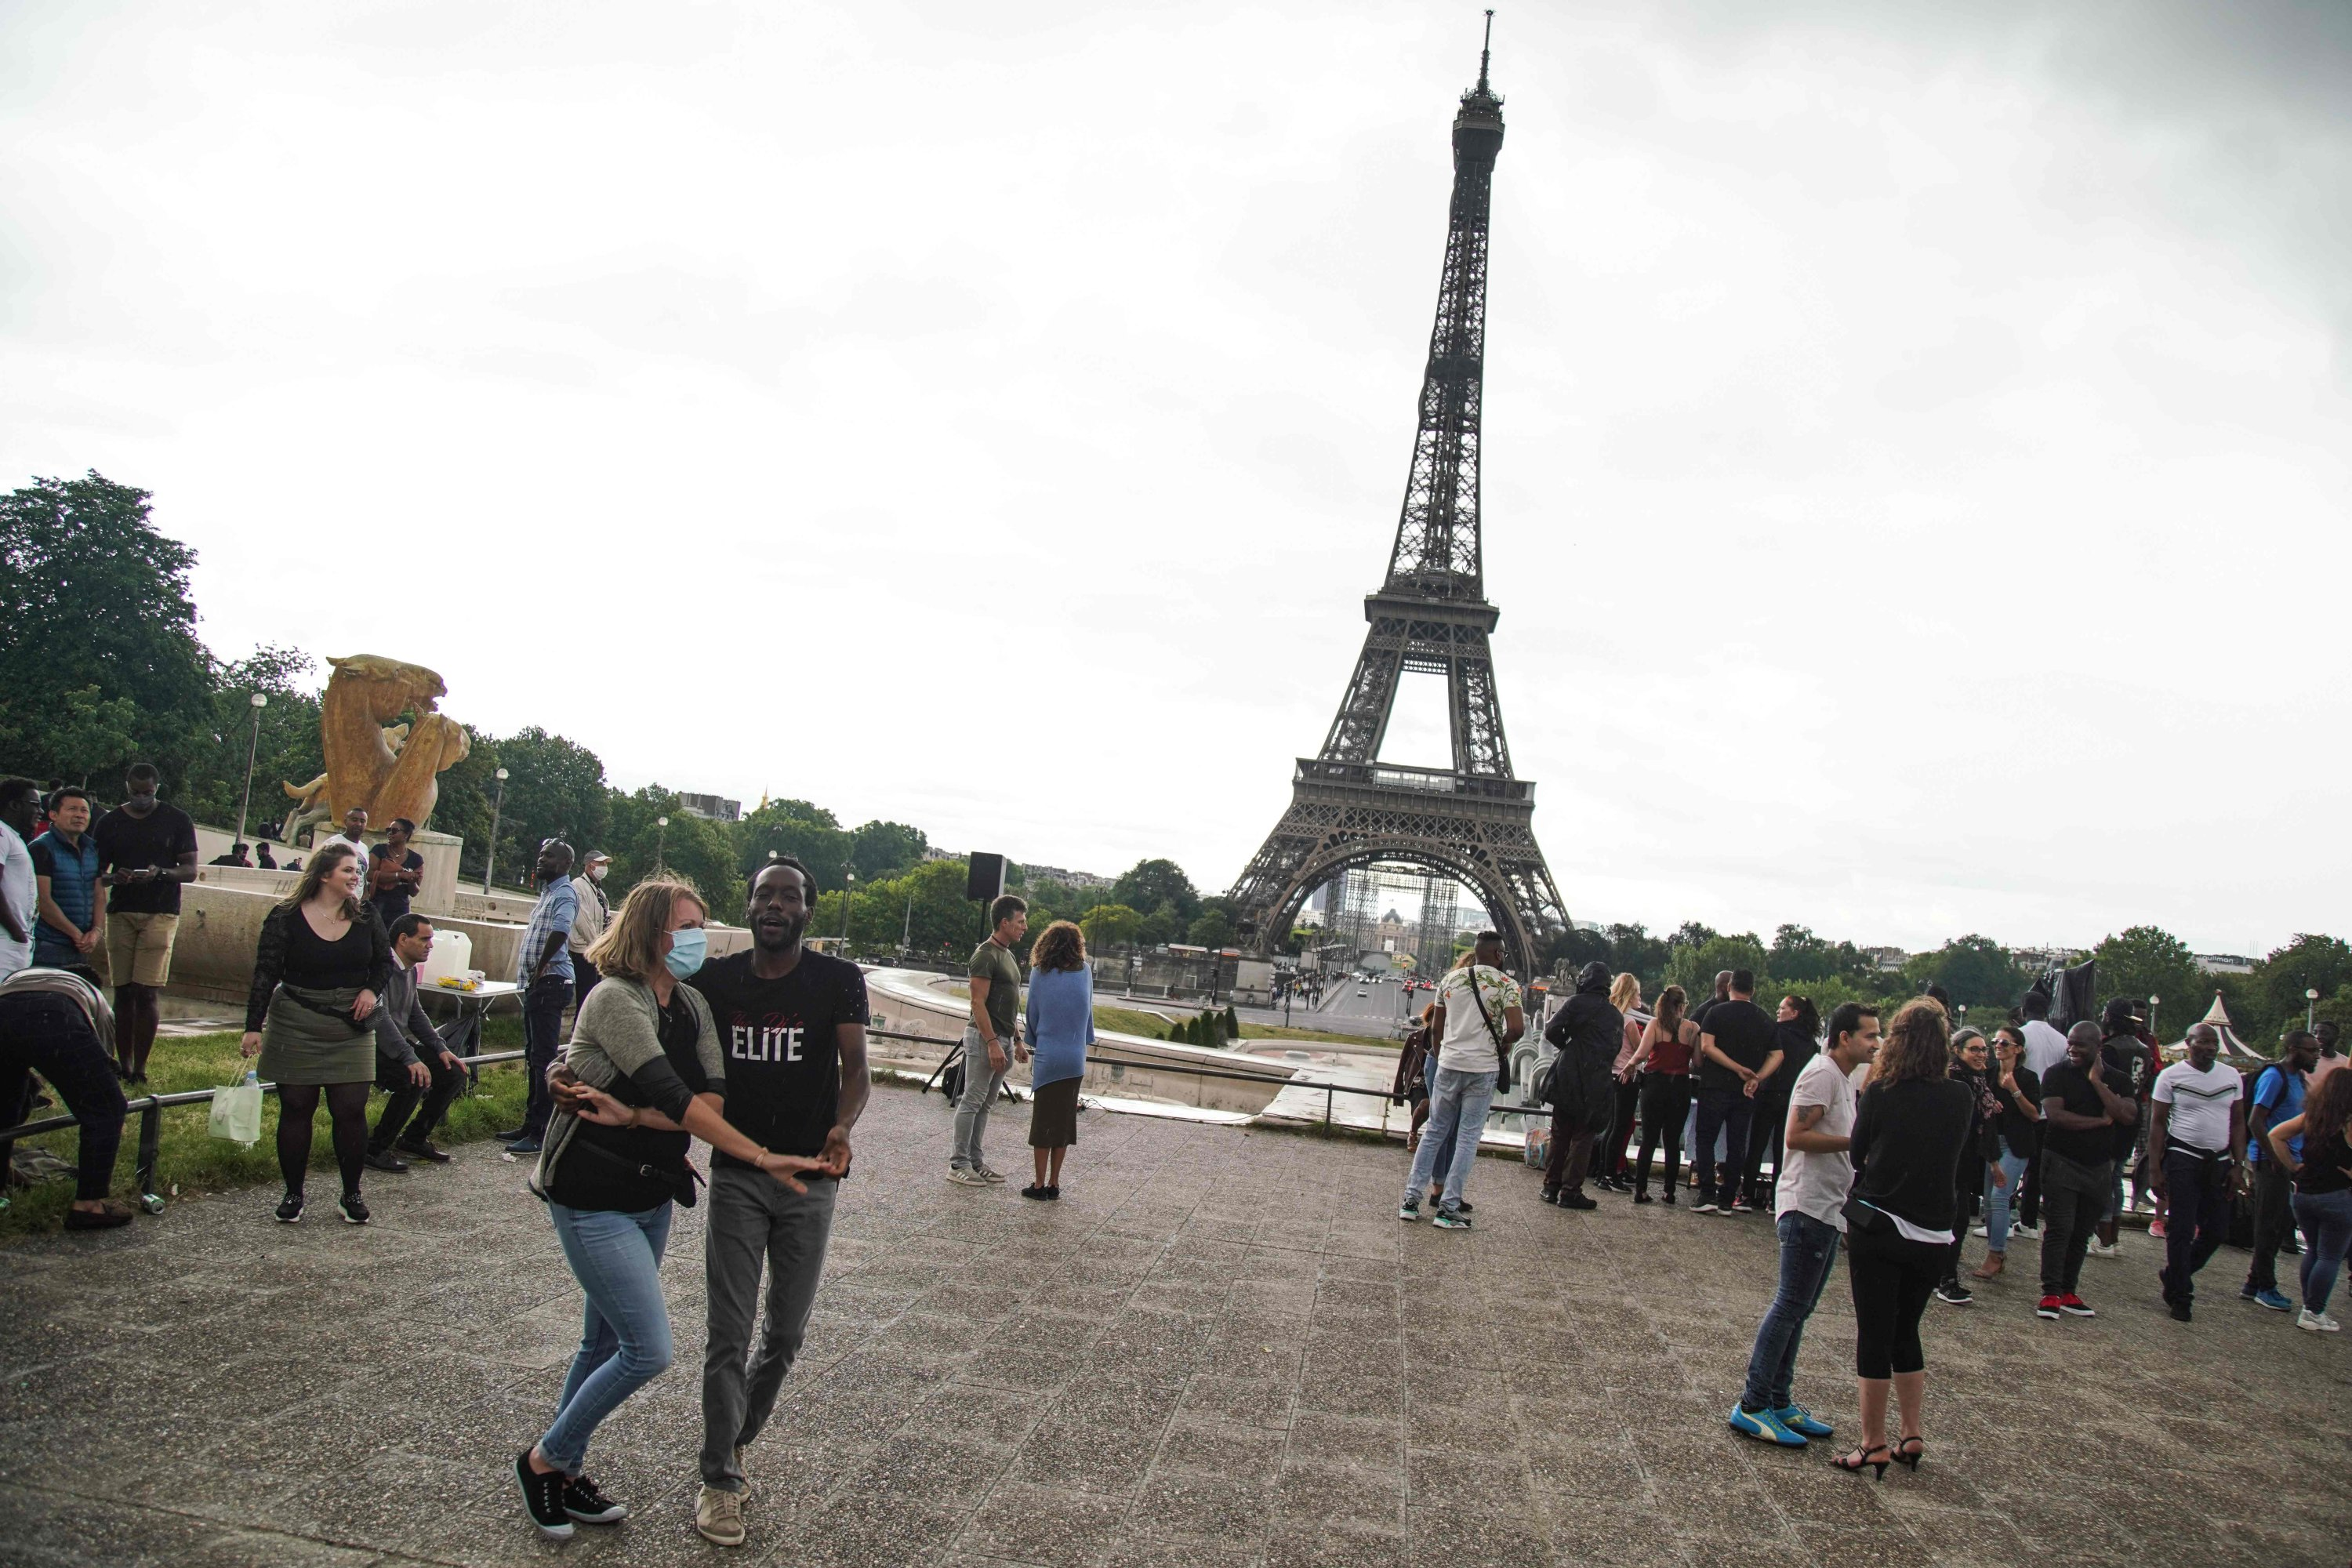 COVID-19: Eiffel Tower Reopens In Paris After 104-Day Virus Lockdown